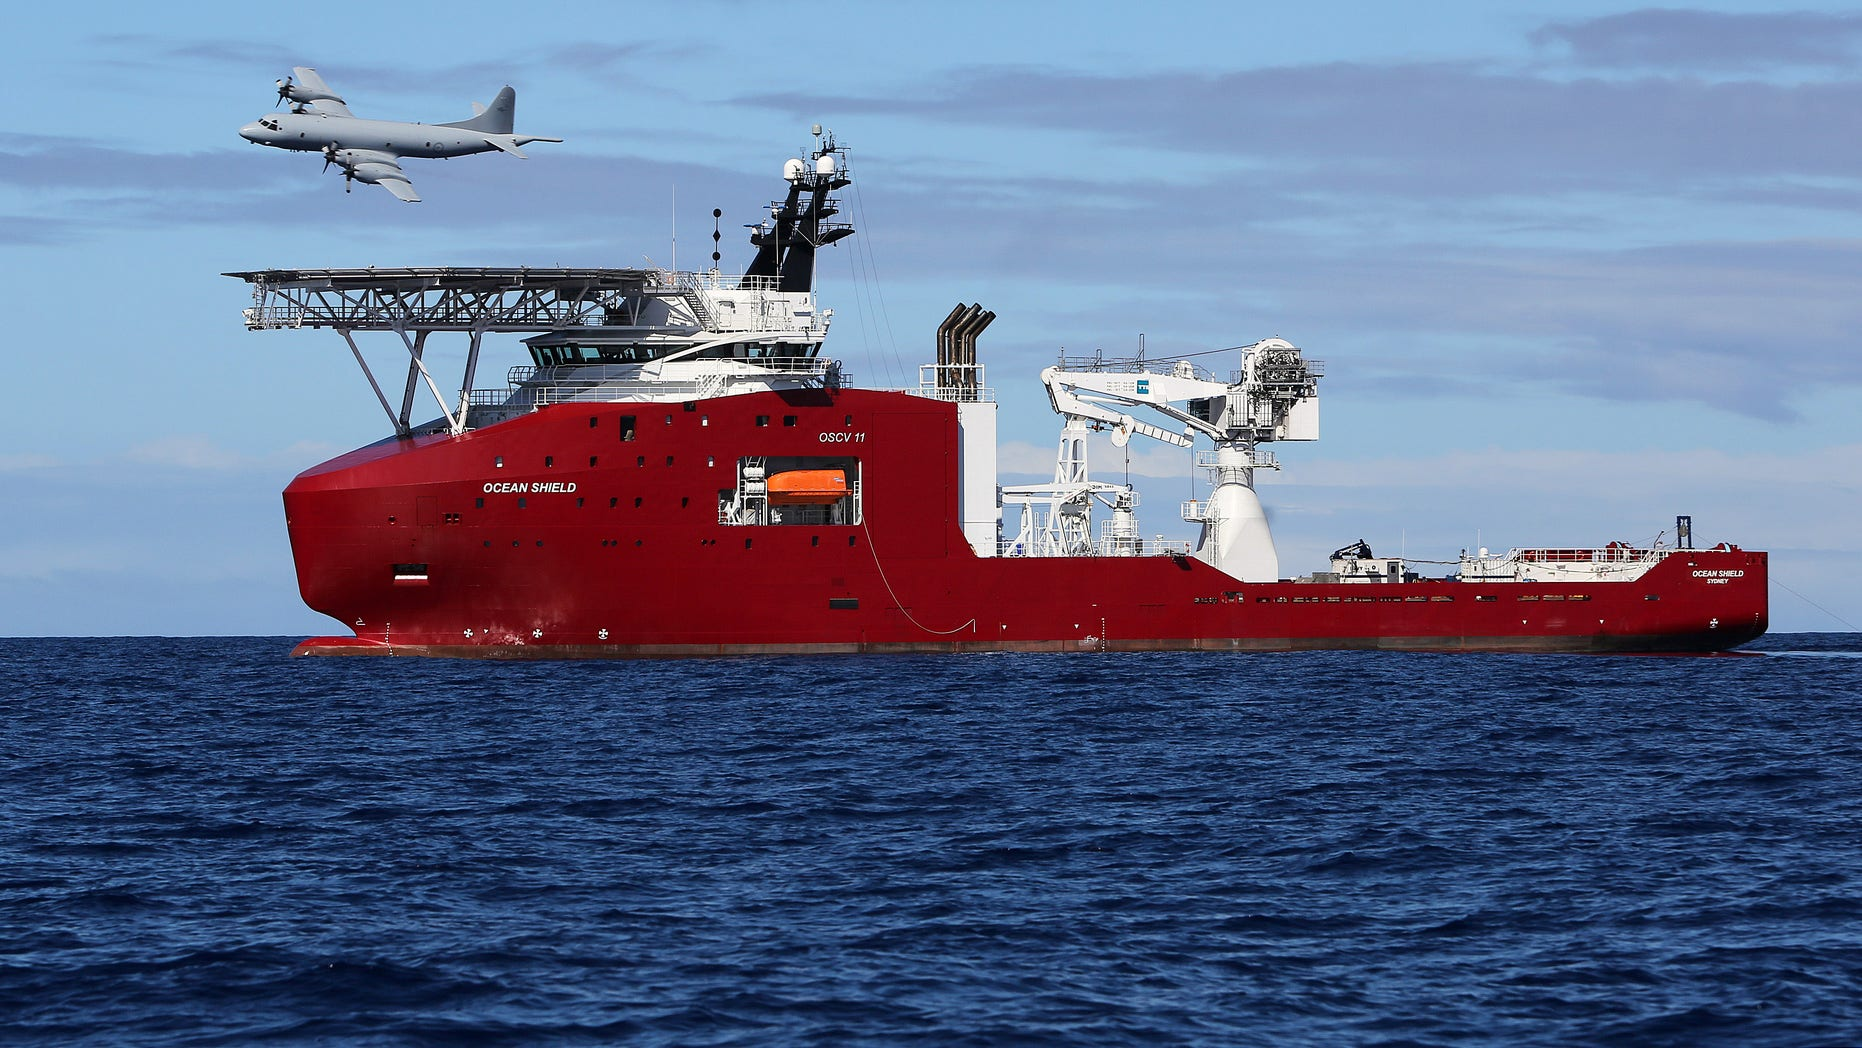 April 9, 2014 - Royal Australian Air Force AP-3C Orion flies past Australian Defense vessel Ocean Shield on a mission to drop sonar buoys to assist in the acoustic search of the missing Malaysia Airlines Flight 370 in the southern Indian Ocean.